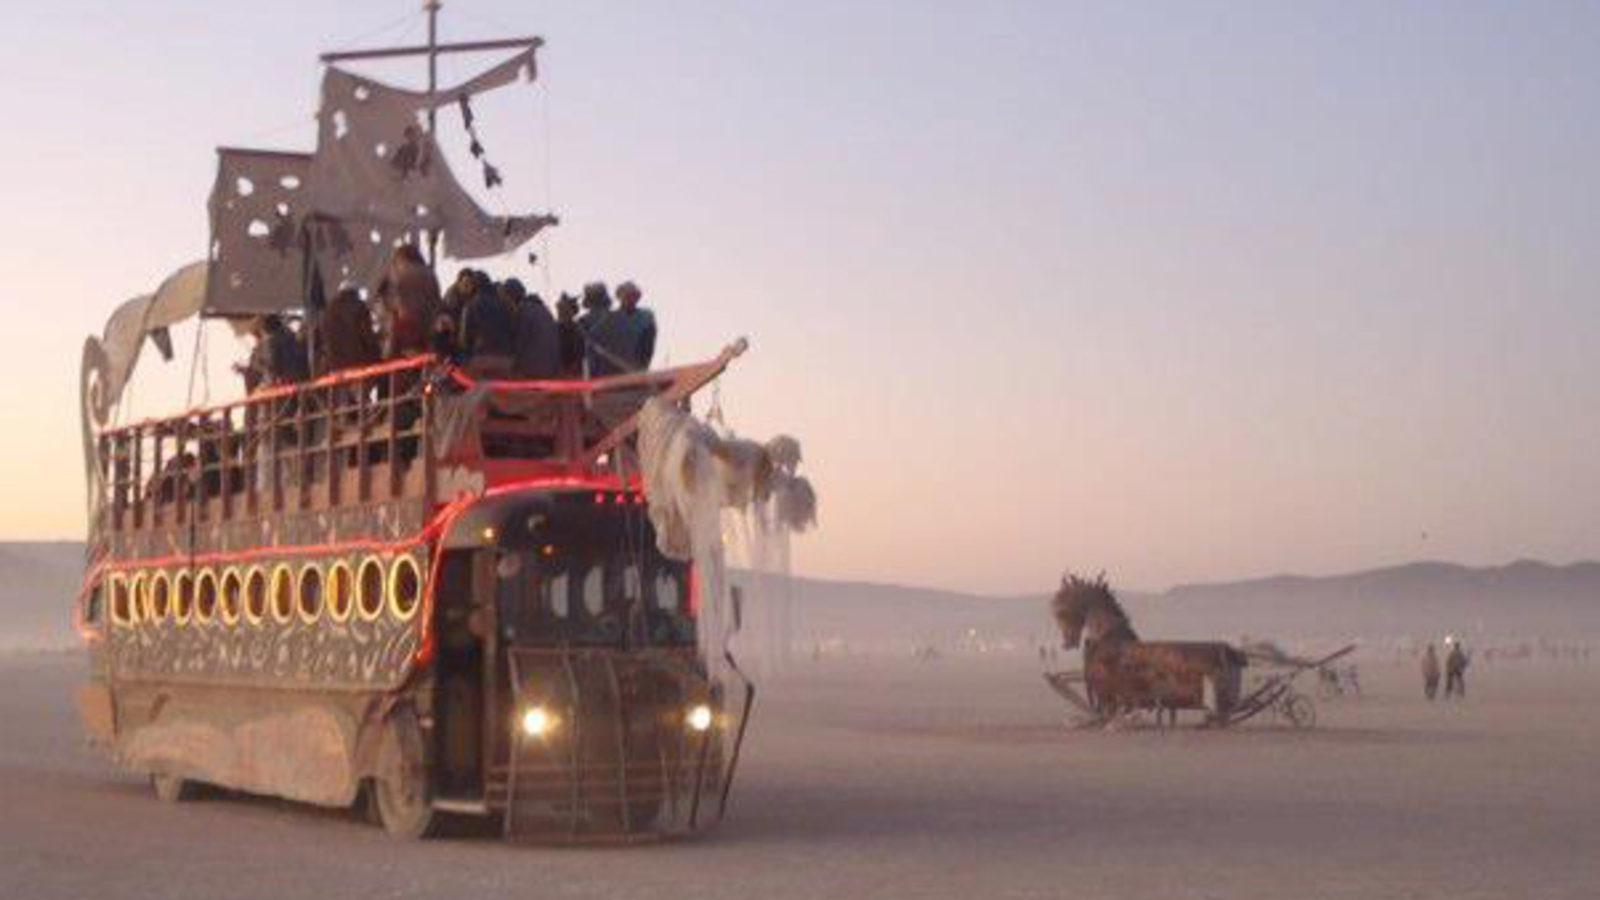 Photo of Dodobus at Burning Man